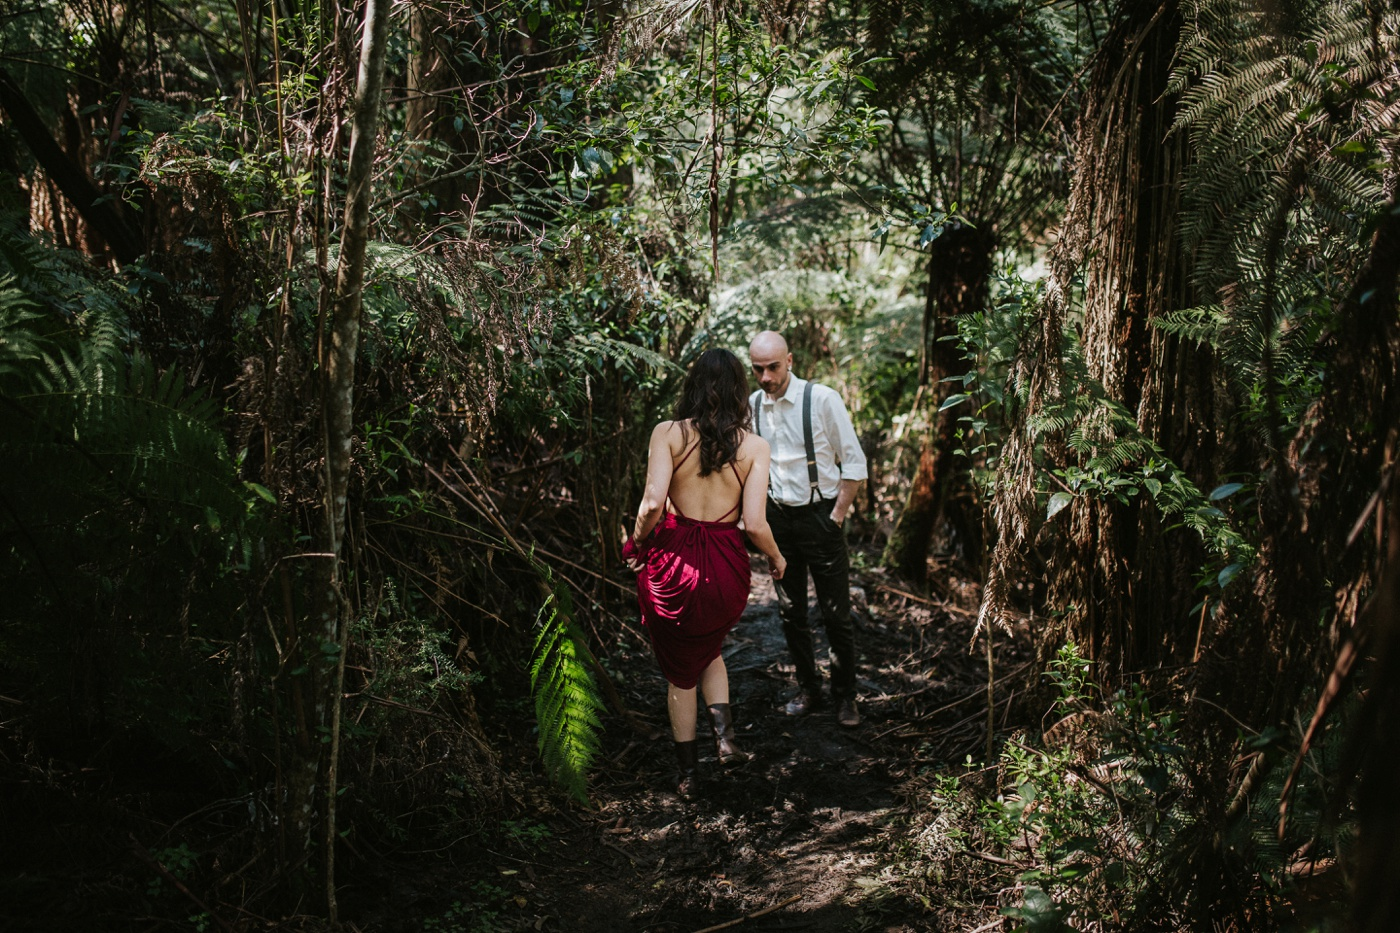 monicajames_dandenongs-dog-fun-relaxed-engagement-shoot_melbourne-fun-candid-wedding-photography_16